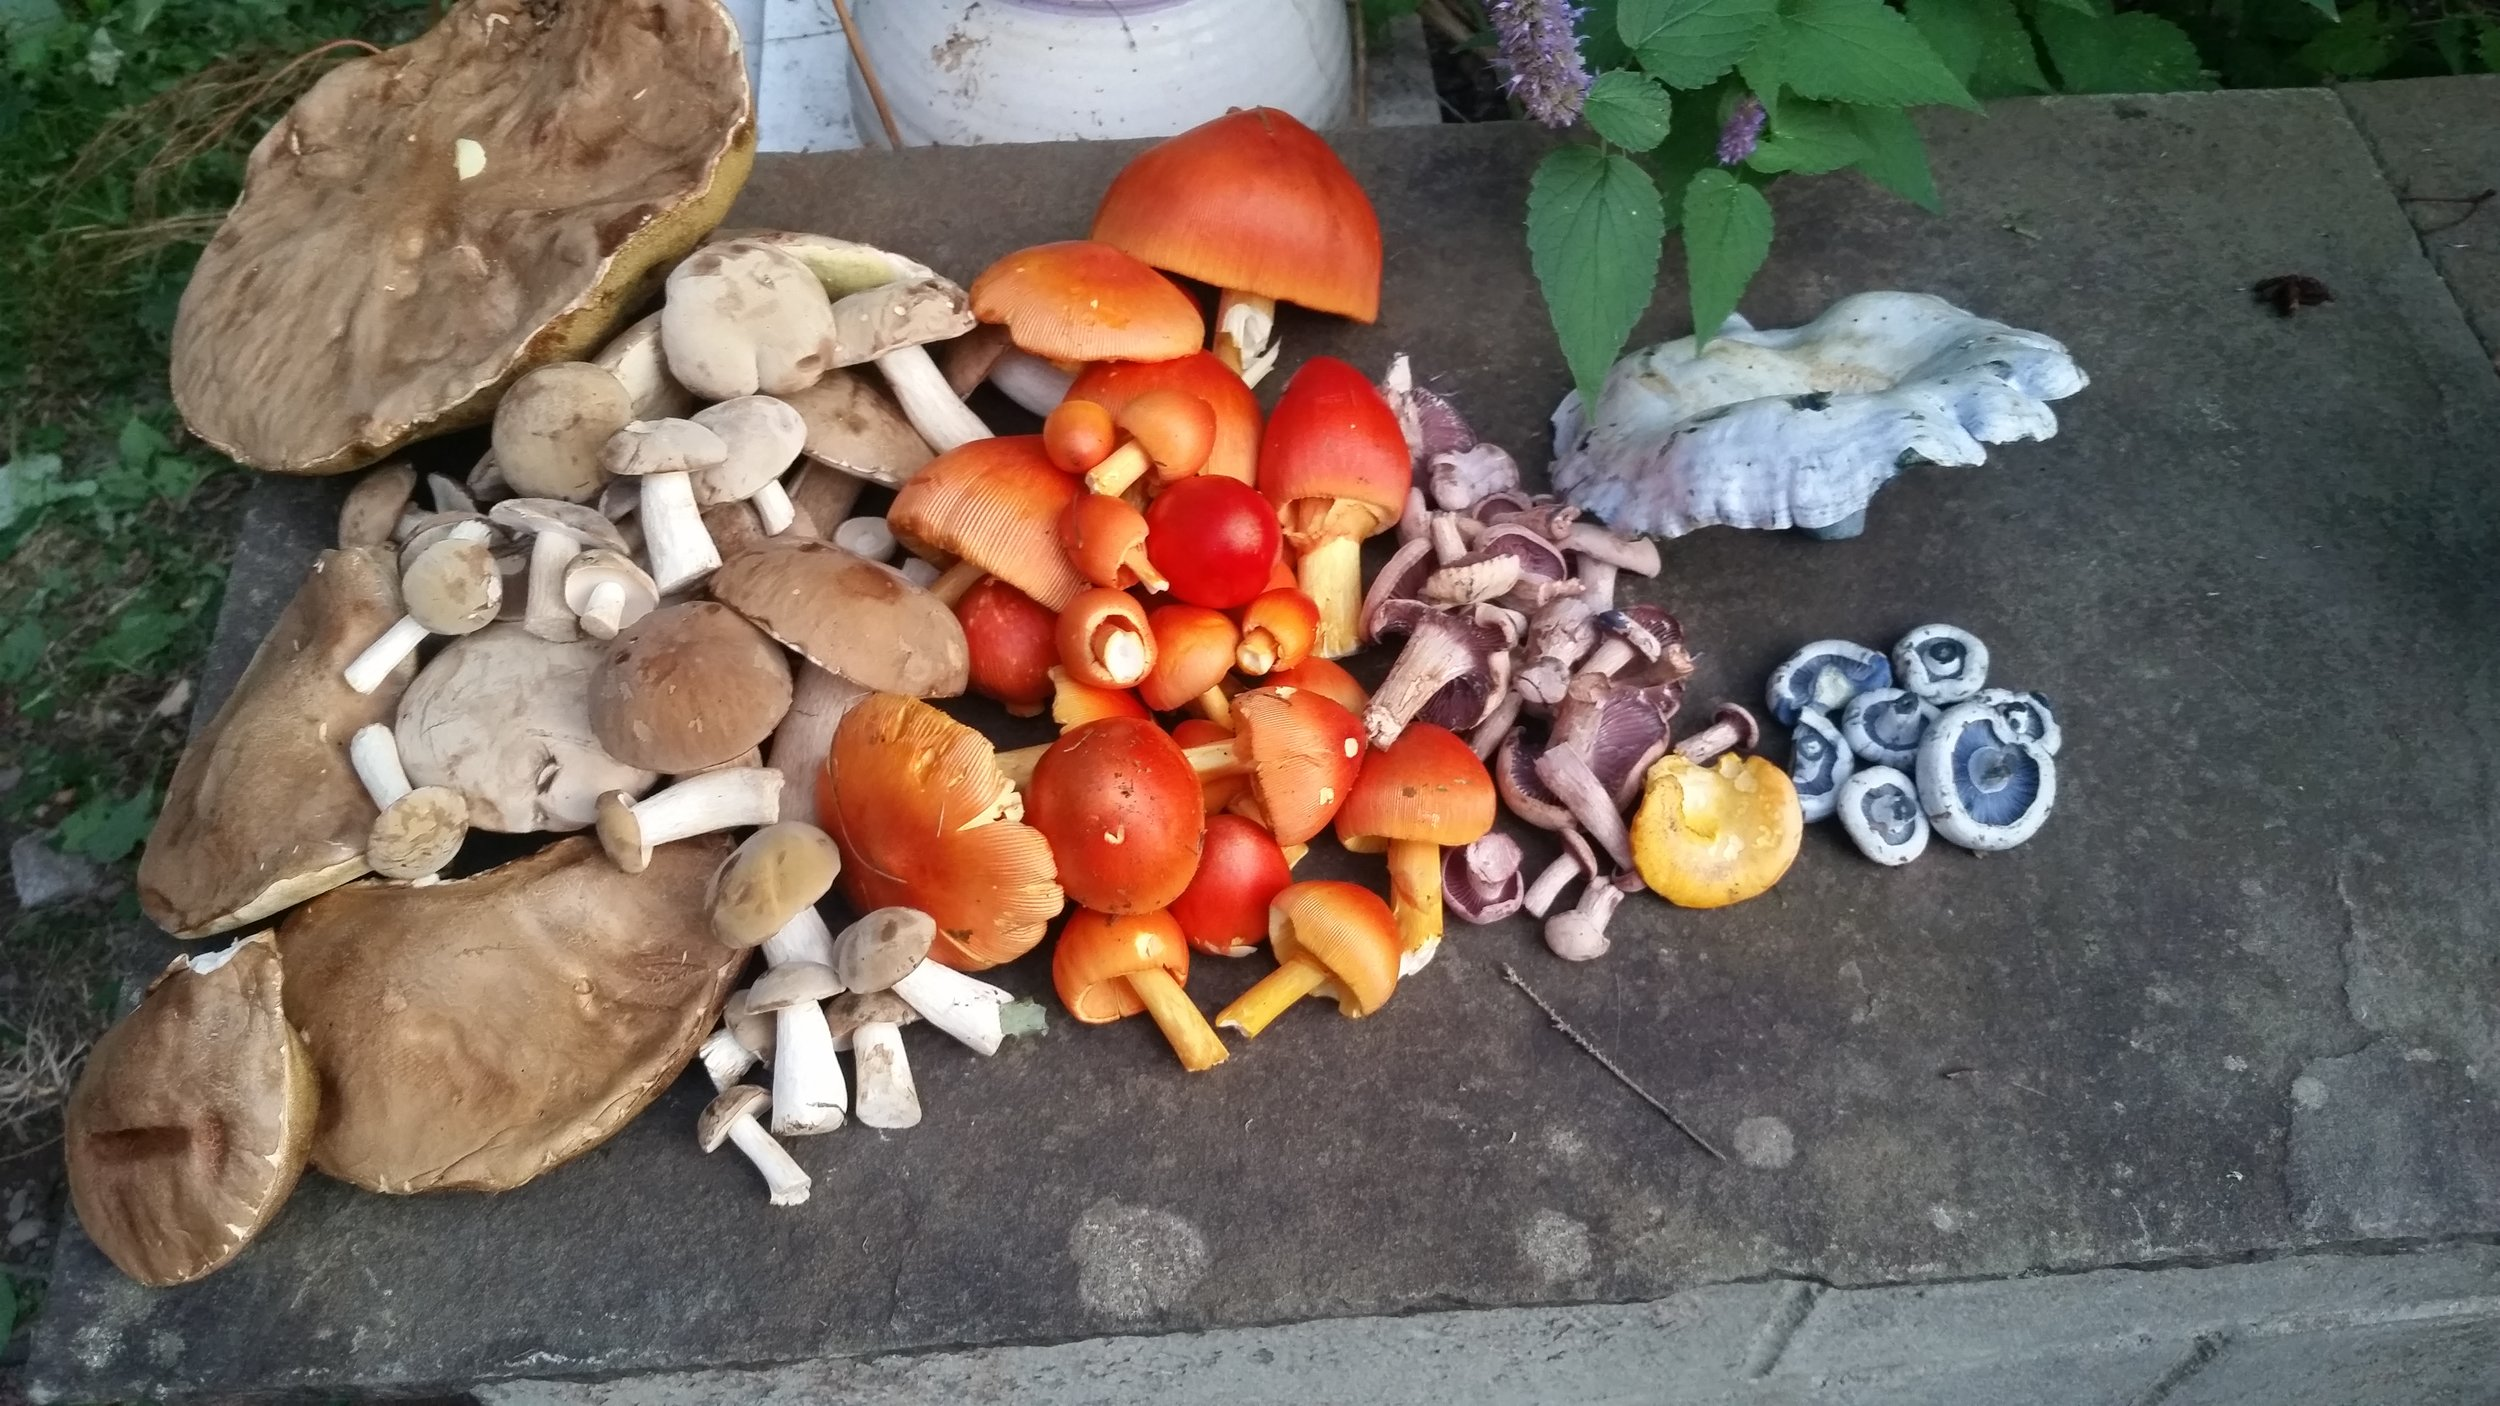 A rainbow of edible wild mushrooms. From left to right, porcini, Amanita jacksonii, Laccaria ochropurpurea, a lone chanterelle, and indigo milk caps